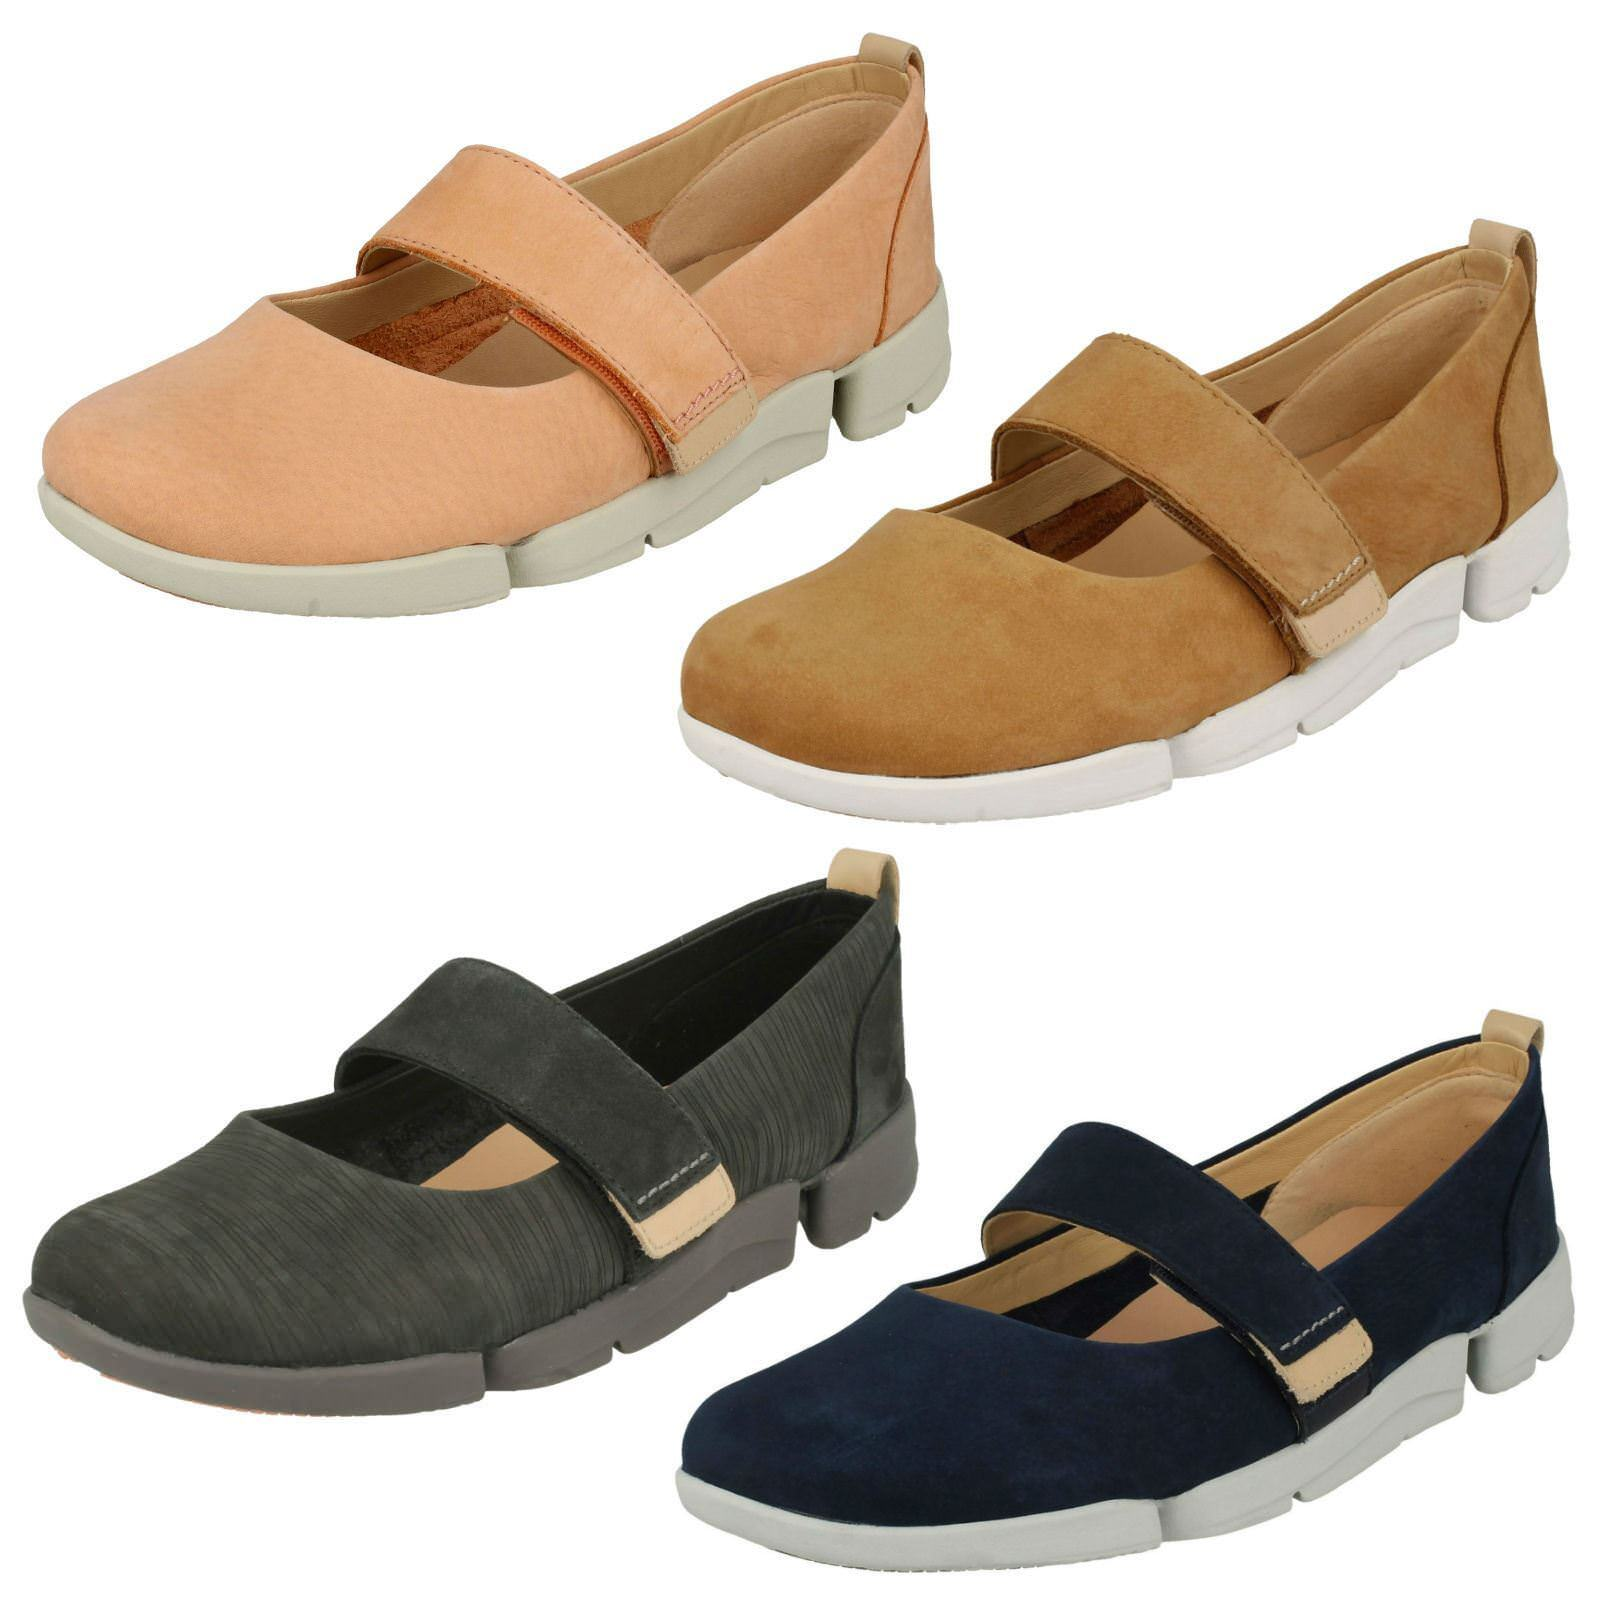 Ladies Clarks Casual Flat shoes - Tri Carrie